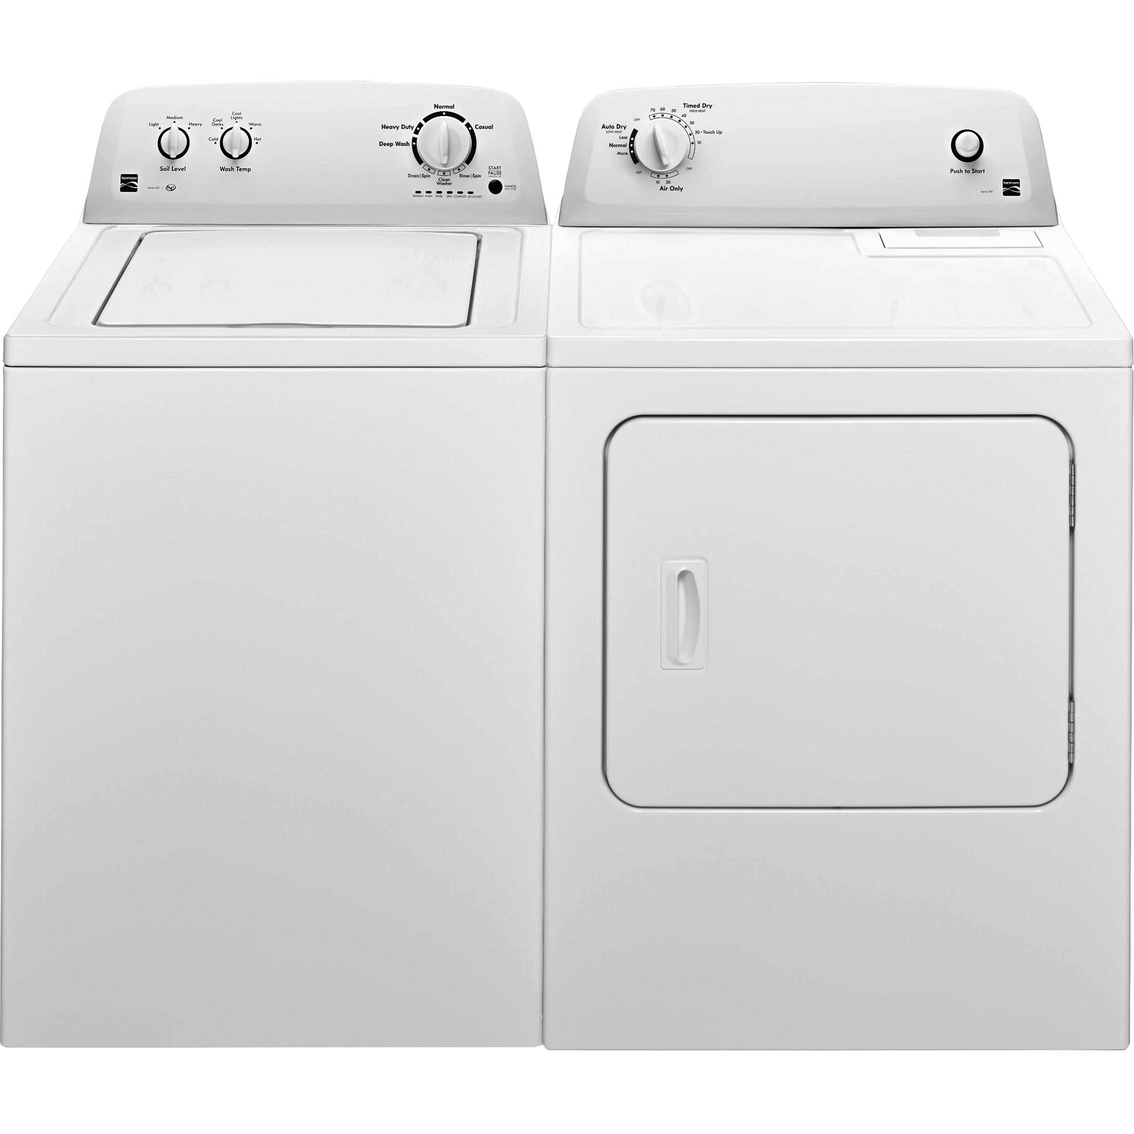 kenmore 500 washer. 3550 kenmore 500 washer